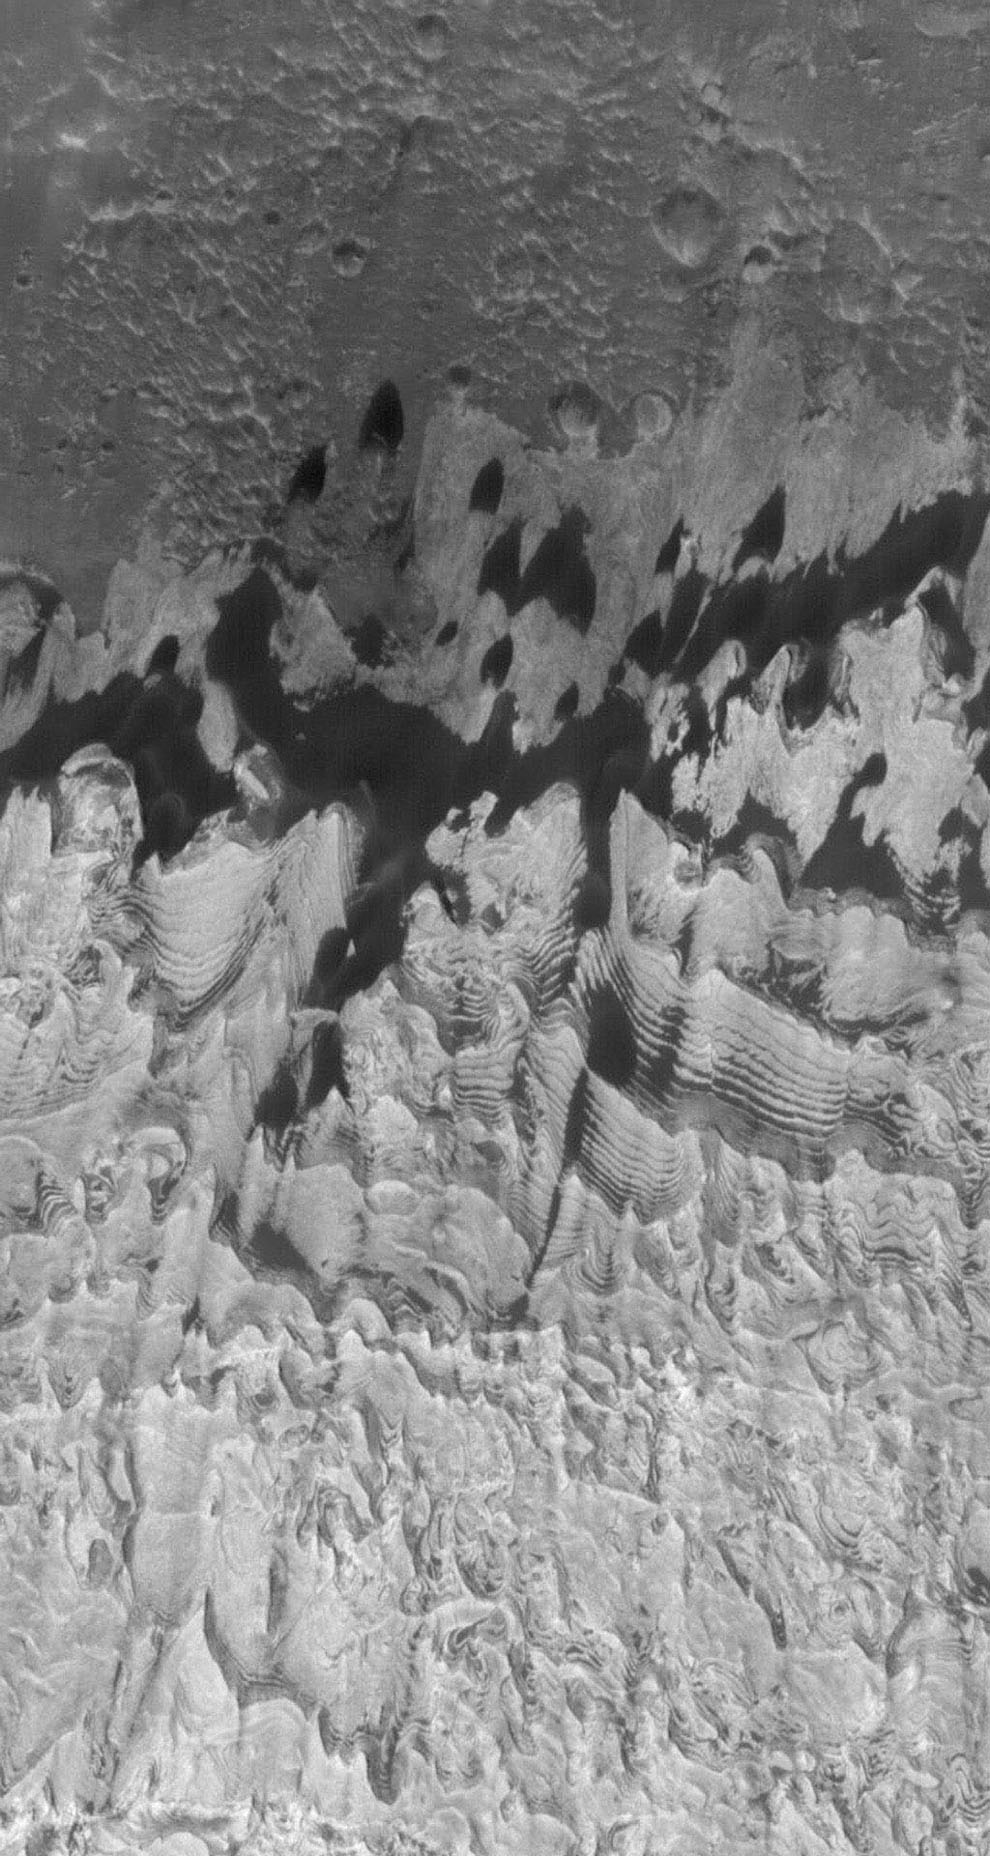 NASA's Mars Global Surveyor shows cracks layered, light-toned outcrops of sedimentary rock in Becquerel Crater. The outcrops are juxtaposed against a dark-toned substrate which occupies the upper (northern) portion of the image.